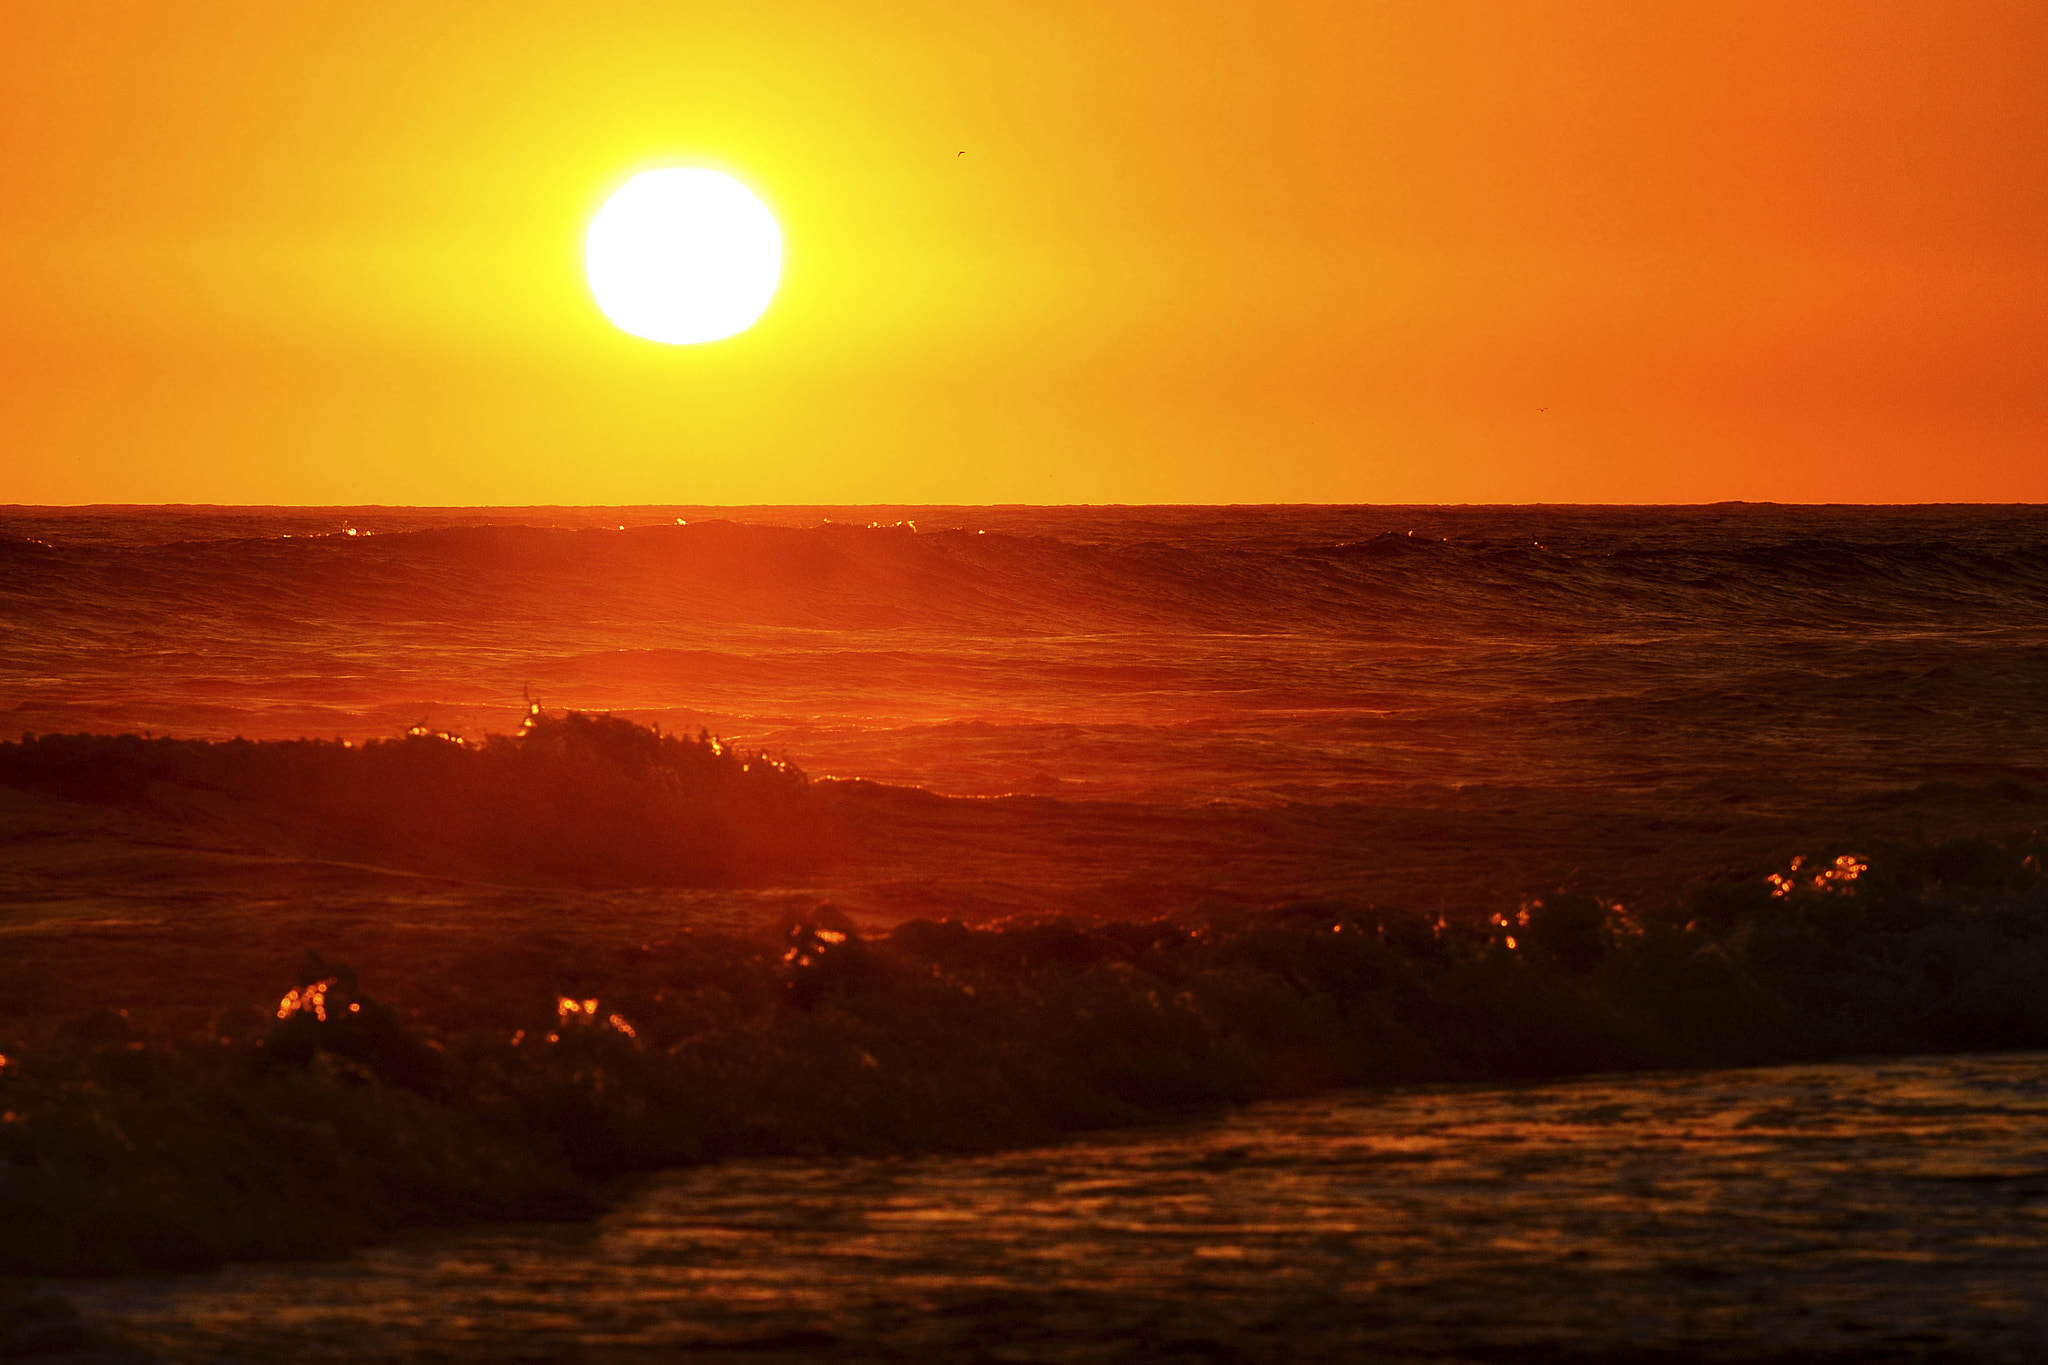 Photograph Sunset at Oceanside - June 29, 2012 by Rich Cruse on 500px